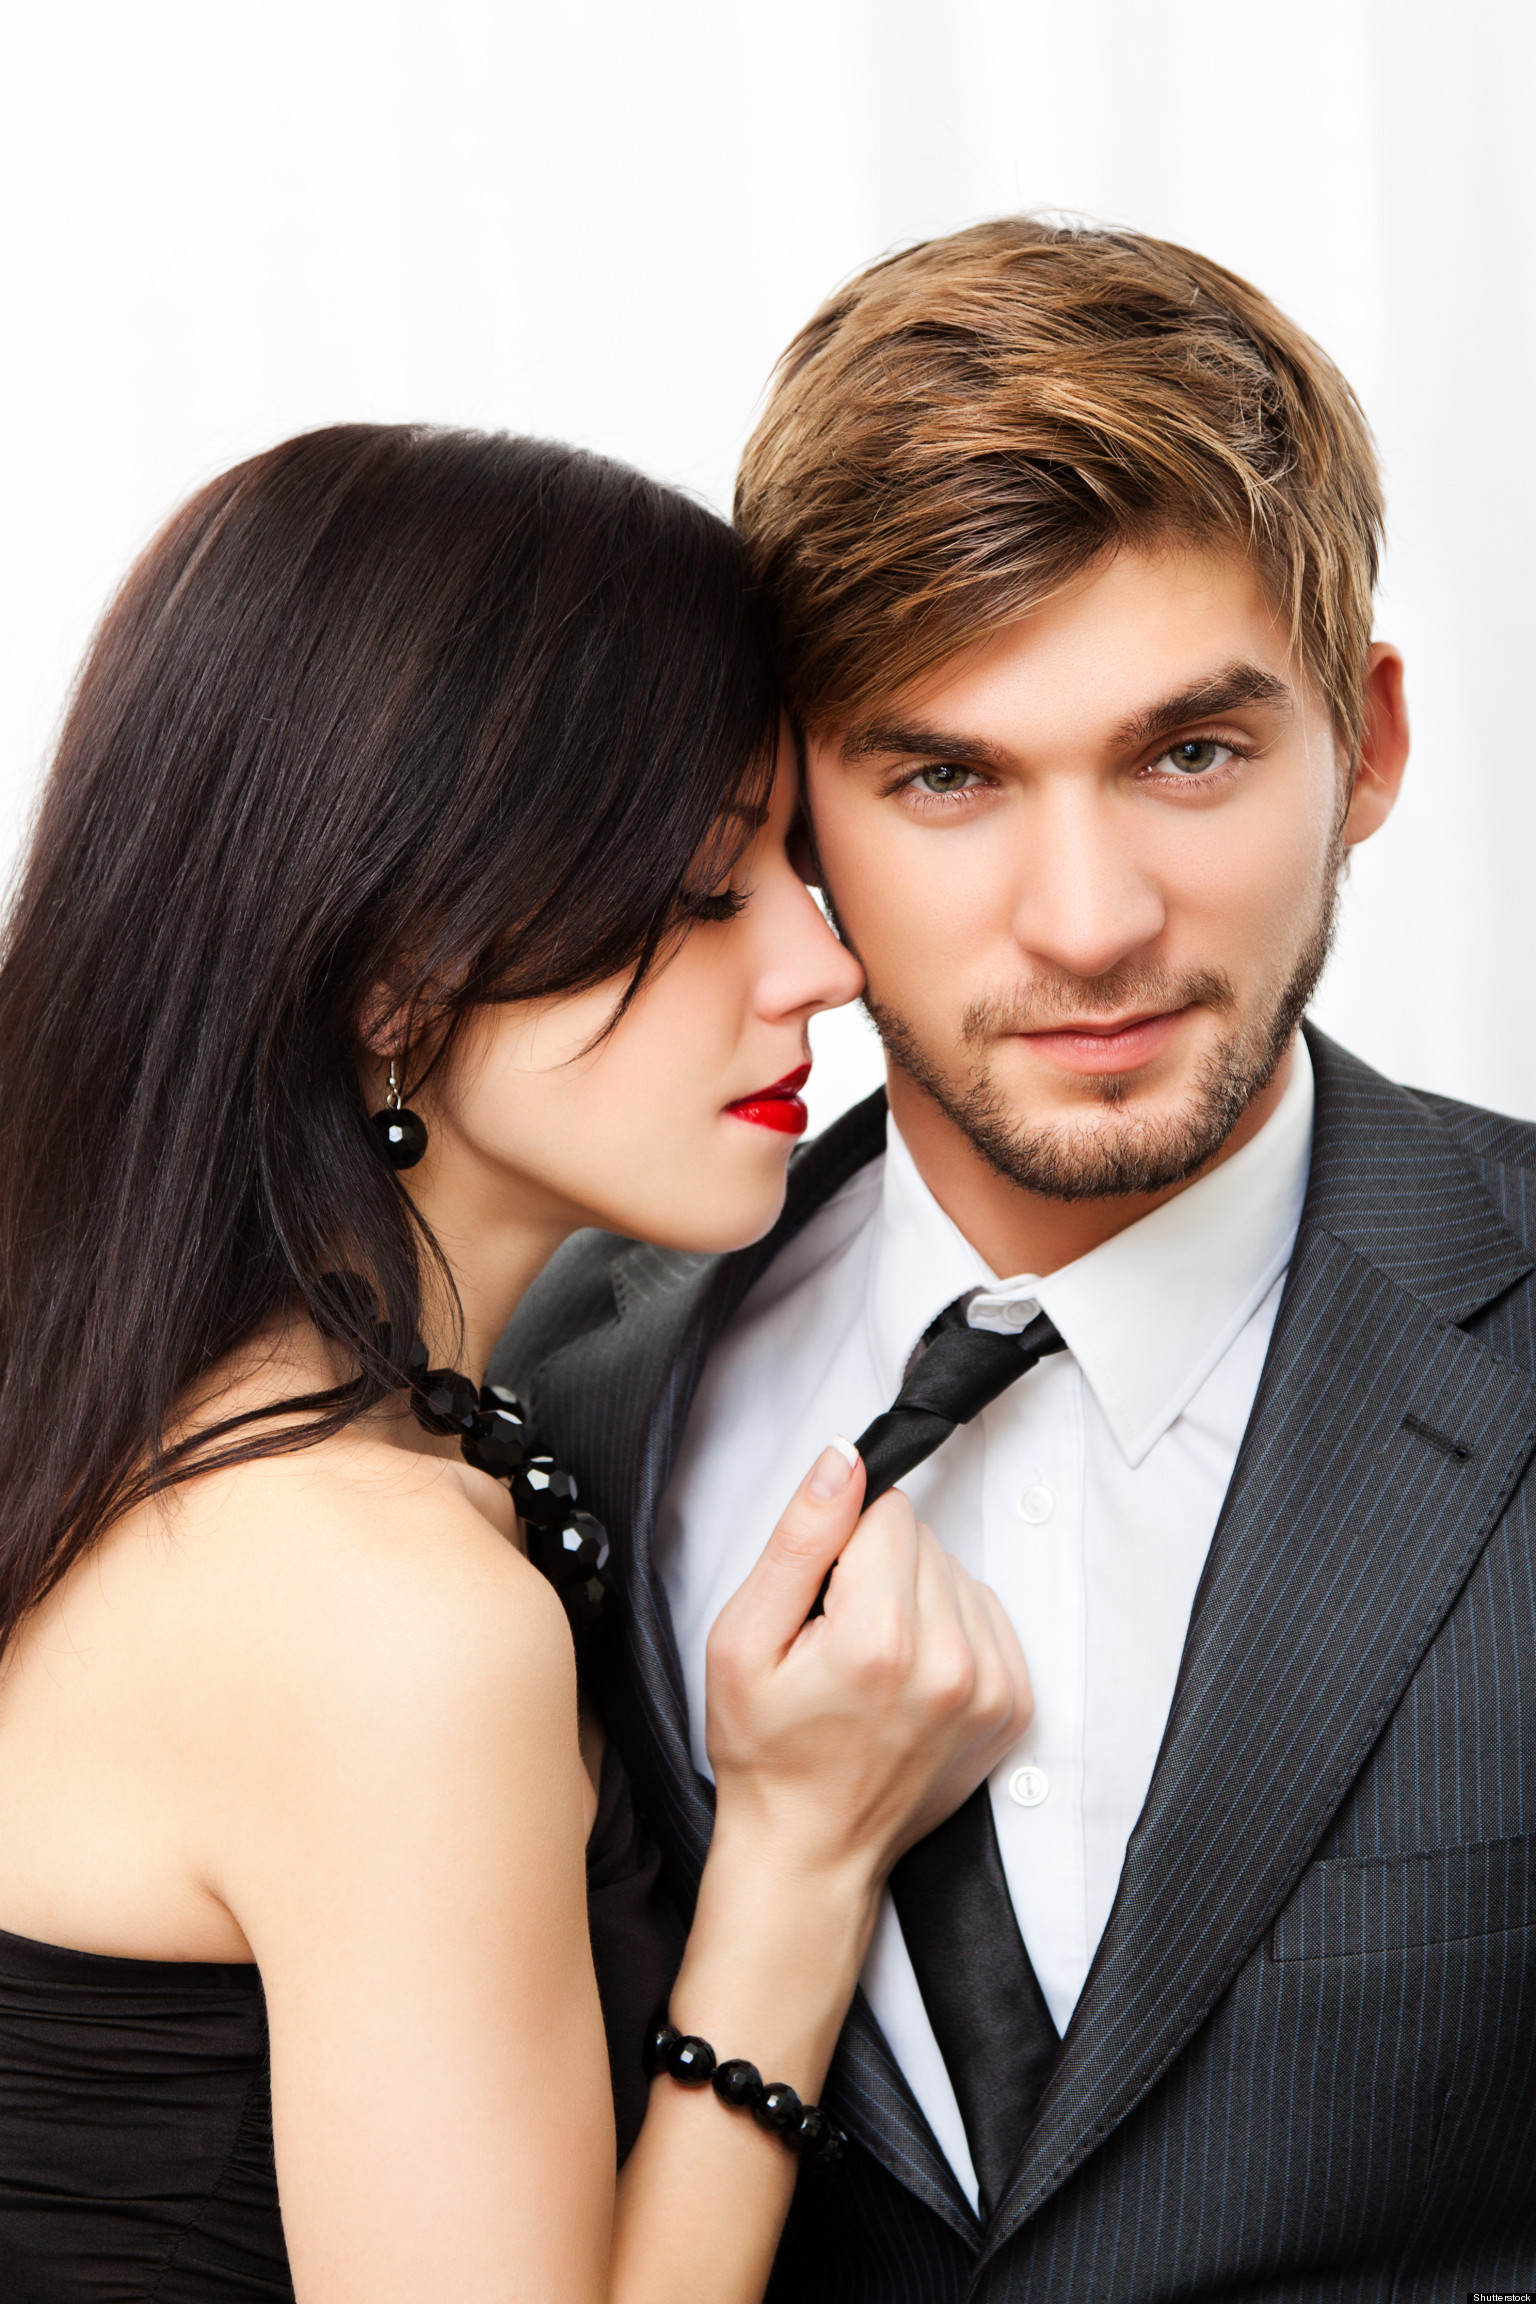 oscar divorced singles dating site Matchcom is the number one destination for online dating with more dates, more relationships, & more marriages than any other dating or personals site.